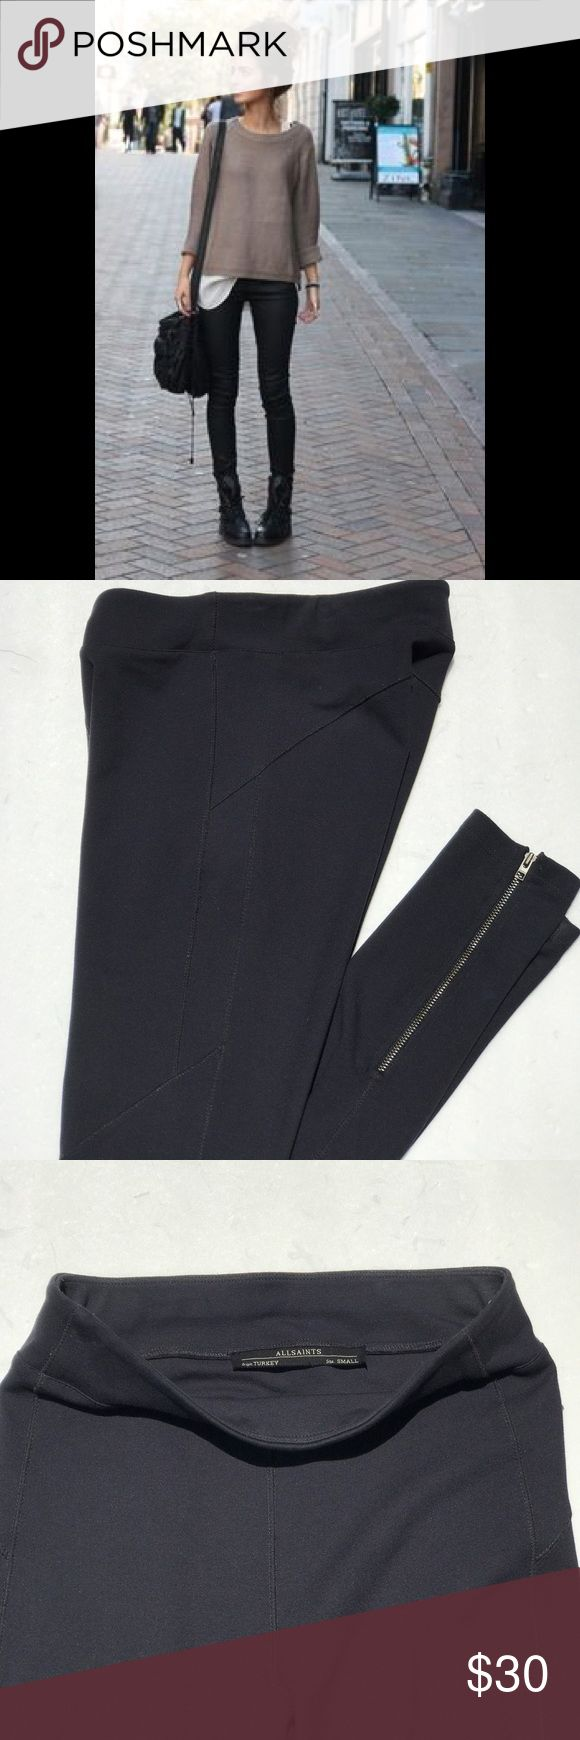 """Allsaints black leggings with ankle zip Good condition! (Model pic style purpose only) these leggings have zippers on ankles 31"""" inseam. Black. Spandex material All Saints Pants Leggings"""